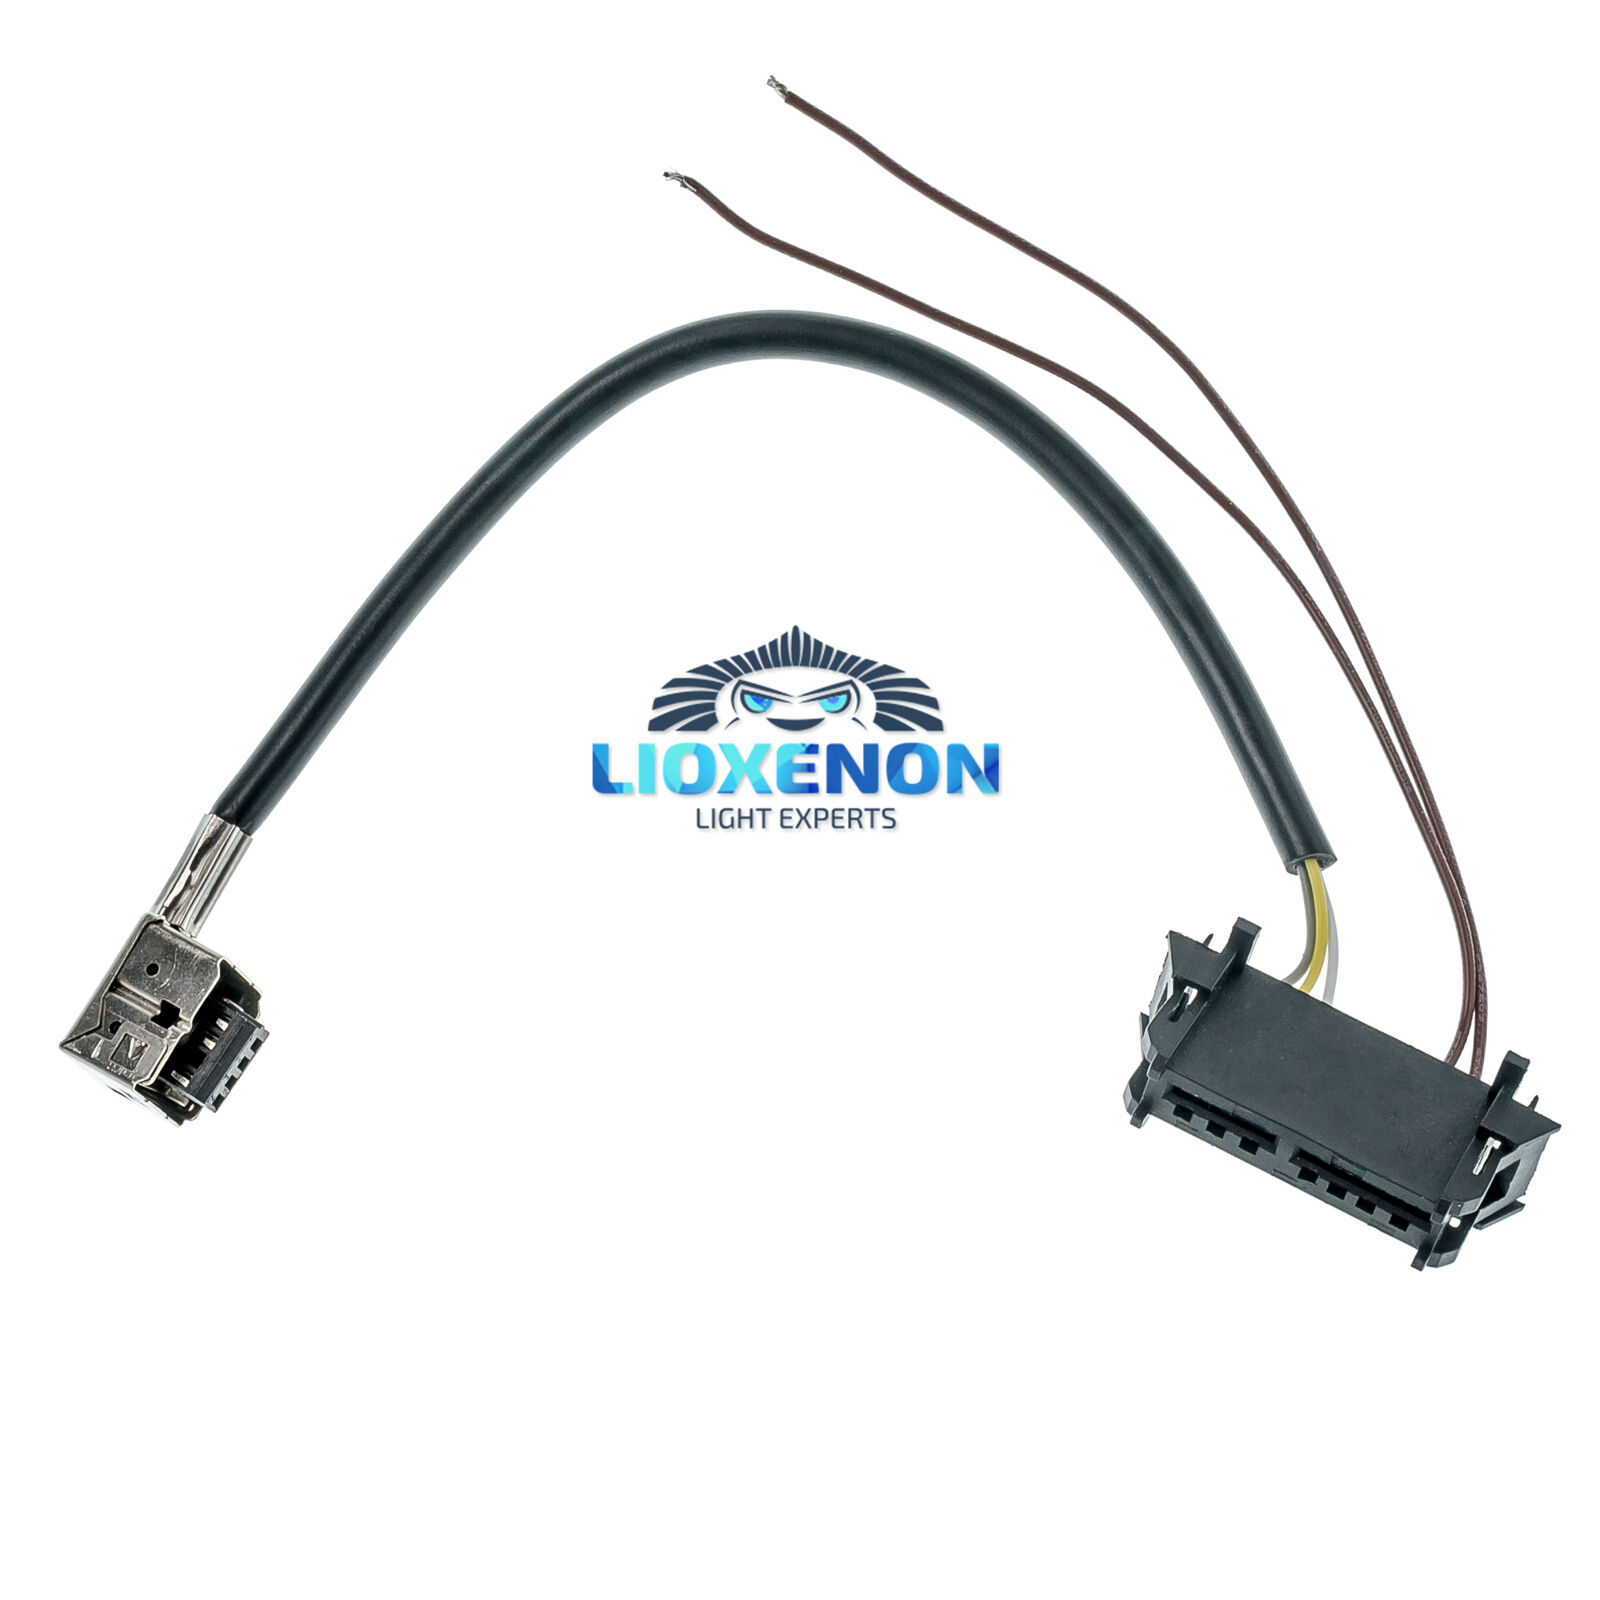 Cable Wire For Valeo 6g D1s Headlight Headlamp Ballast Control Unit 89034934 Eur 11 46